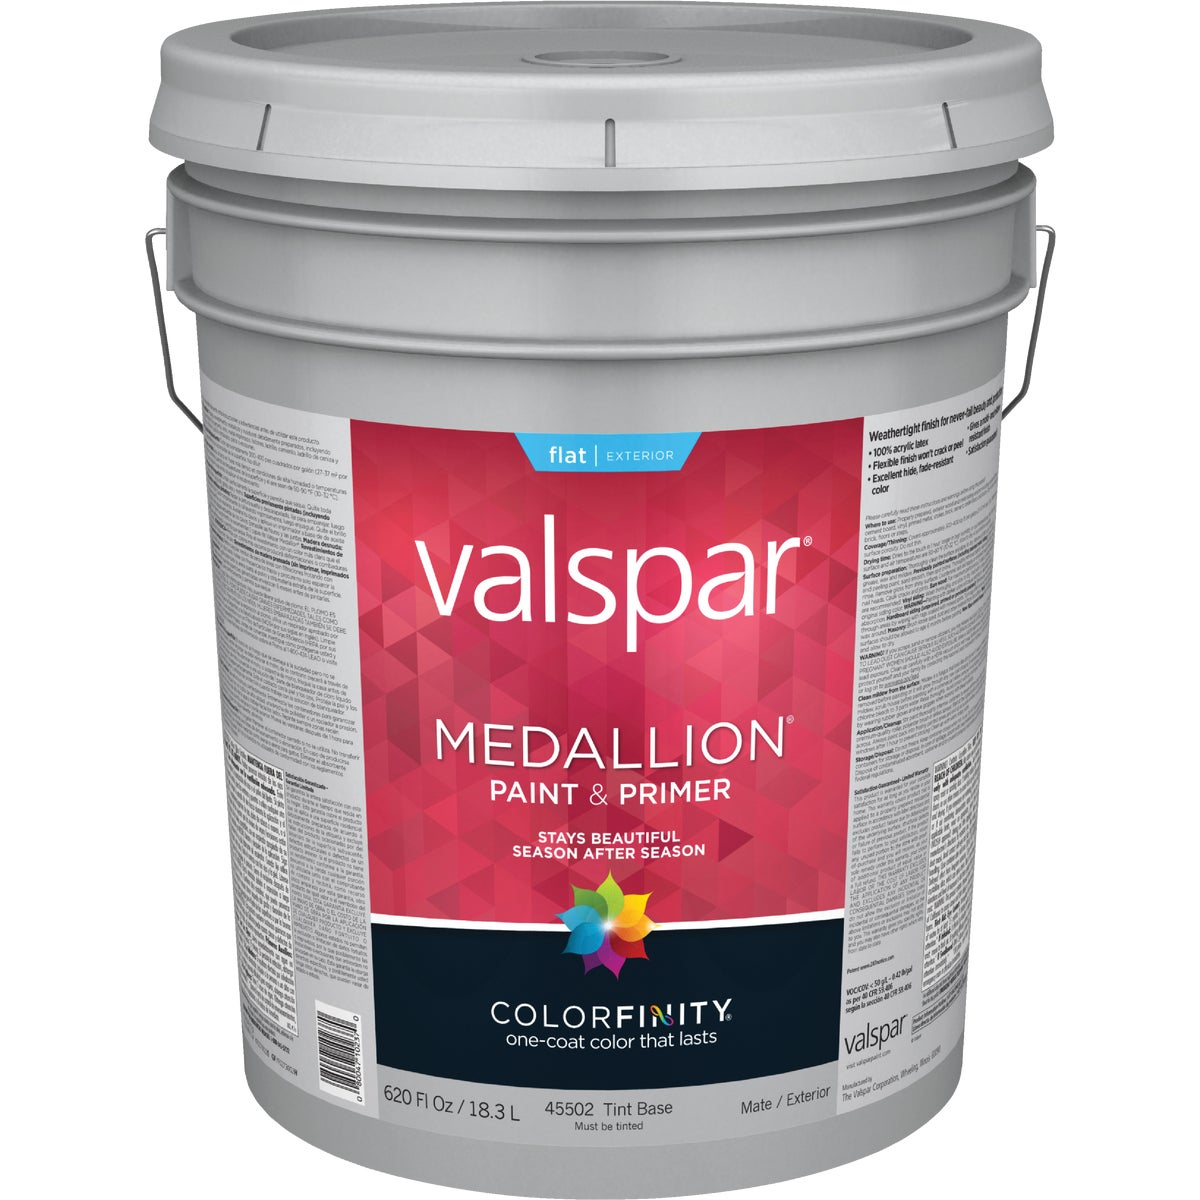 EXT FLAT TINT BS PAINT - 027.0045502.008 by Valspar Corp